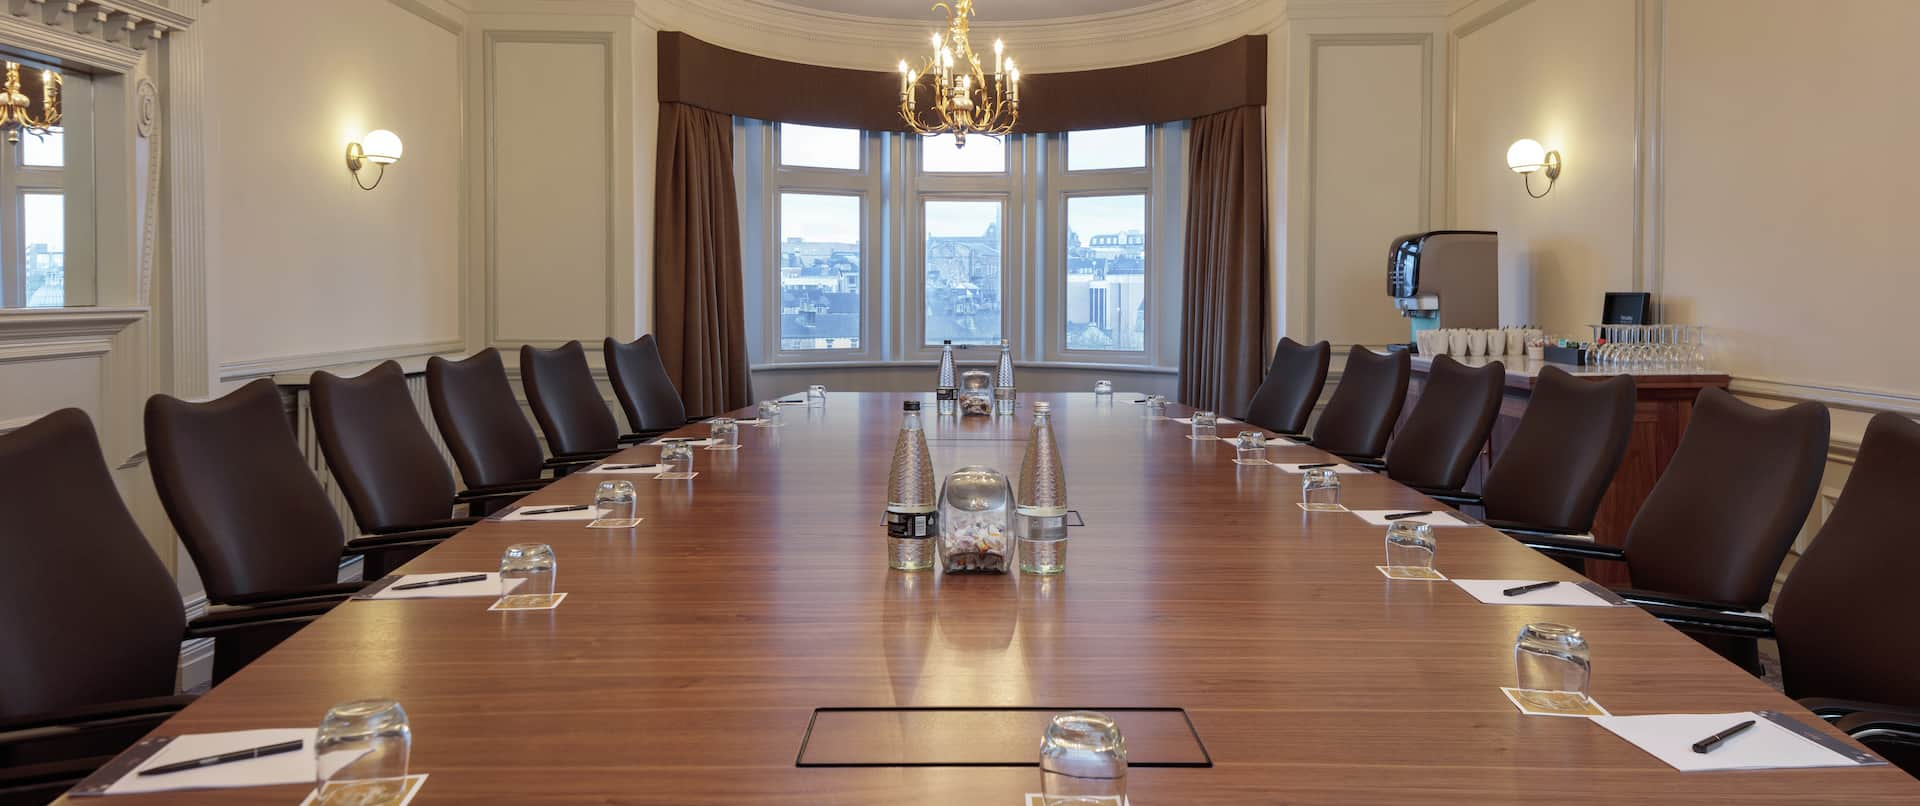 a large boardroom table with leather chairs in a private meeting room